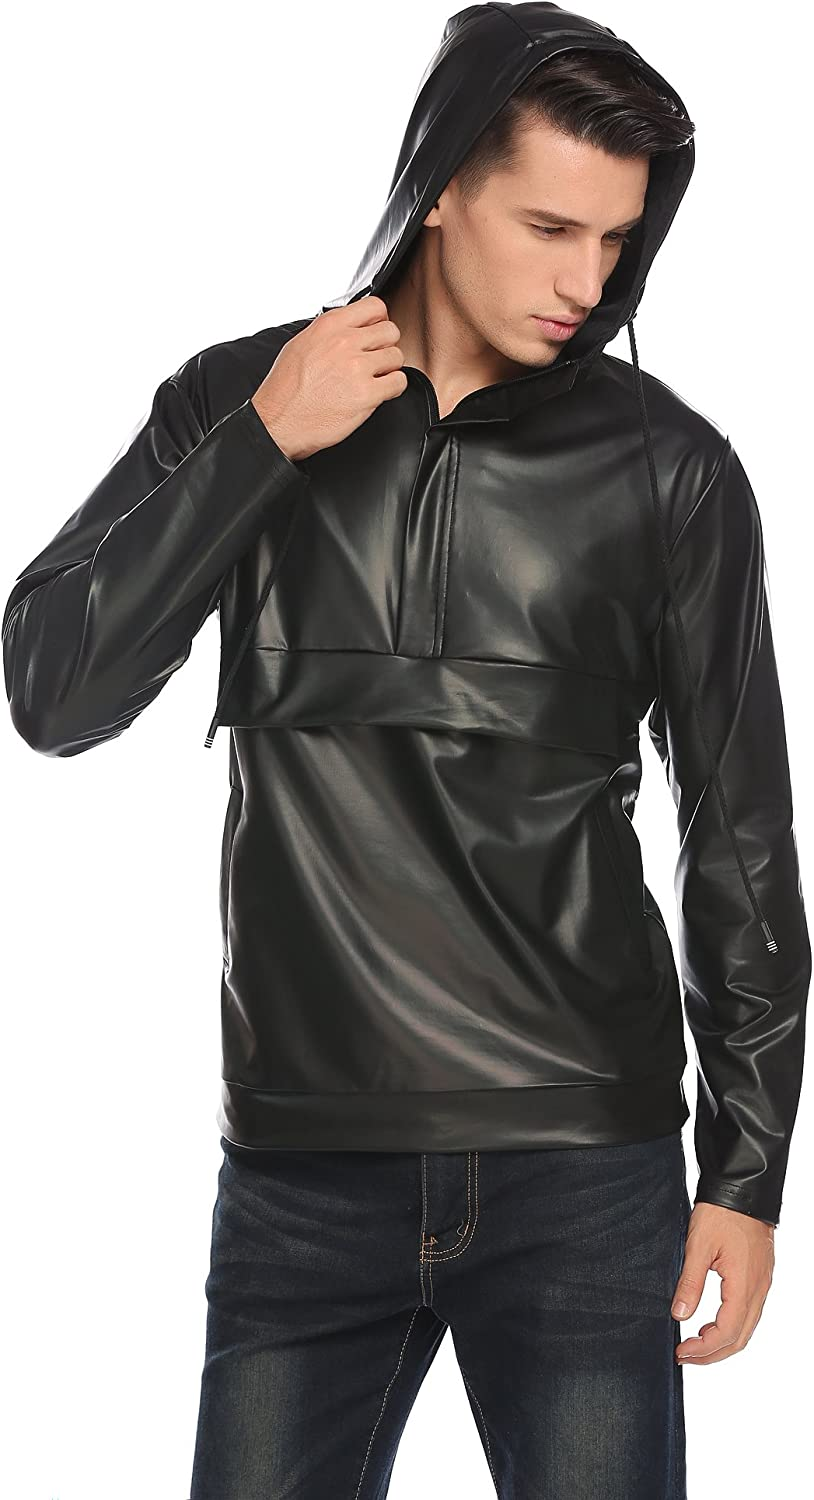 Mens Metallic Shiny Synthetic Leather Hooded Top Nightclub Pullover Hoodie Shirt